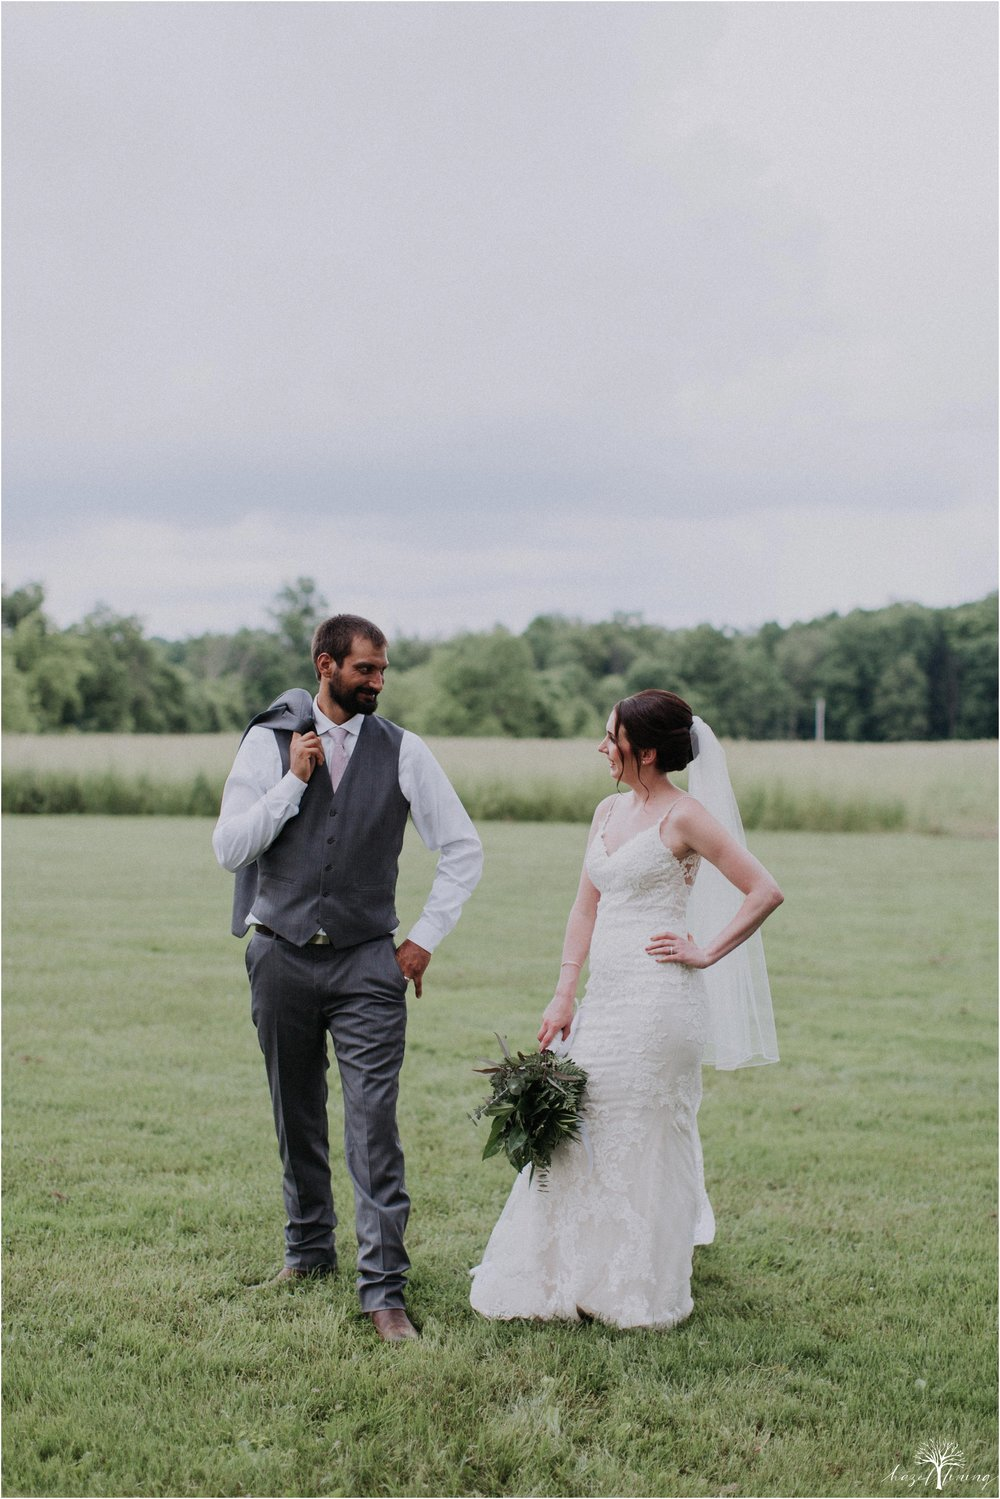 hazel-lining-travel-wedding-elopement-photography-lisa-landon-shoemaker-the-farm-bakery-and-events-bucks-county-quakertown-pennsylvania-summer-country-outdoor-farm-wedding_0097.jpg